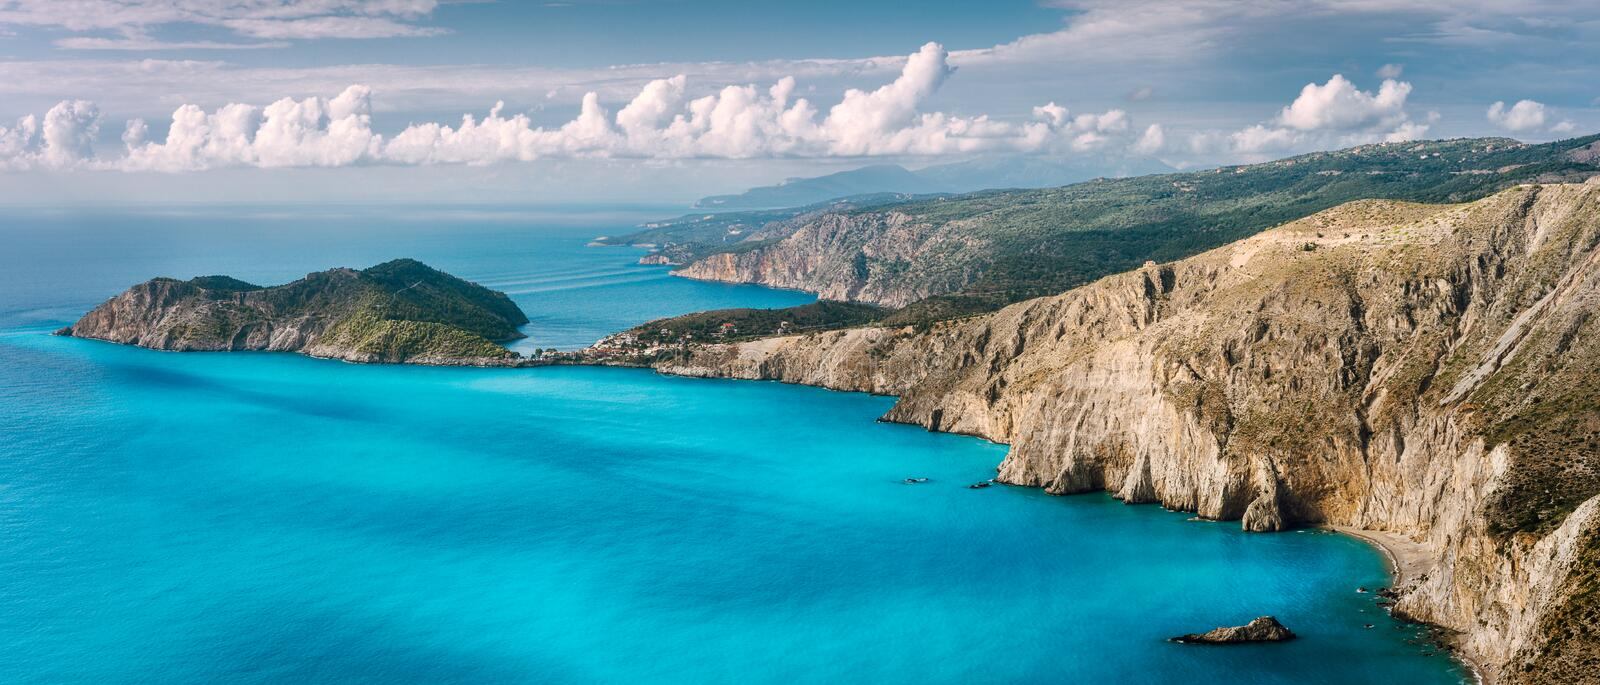 Panorama scenery view of Assos peninsula and coastline in Kefalonia Greece. Turquoise calm mediterranean water royalty free stock photography